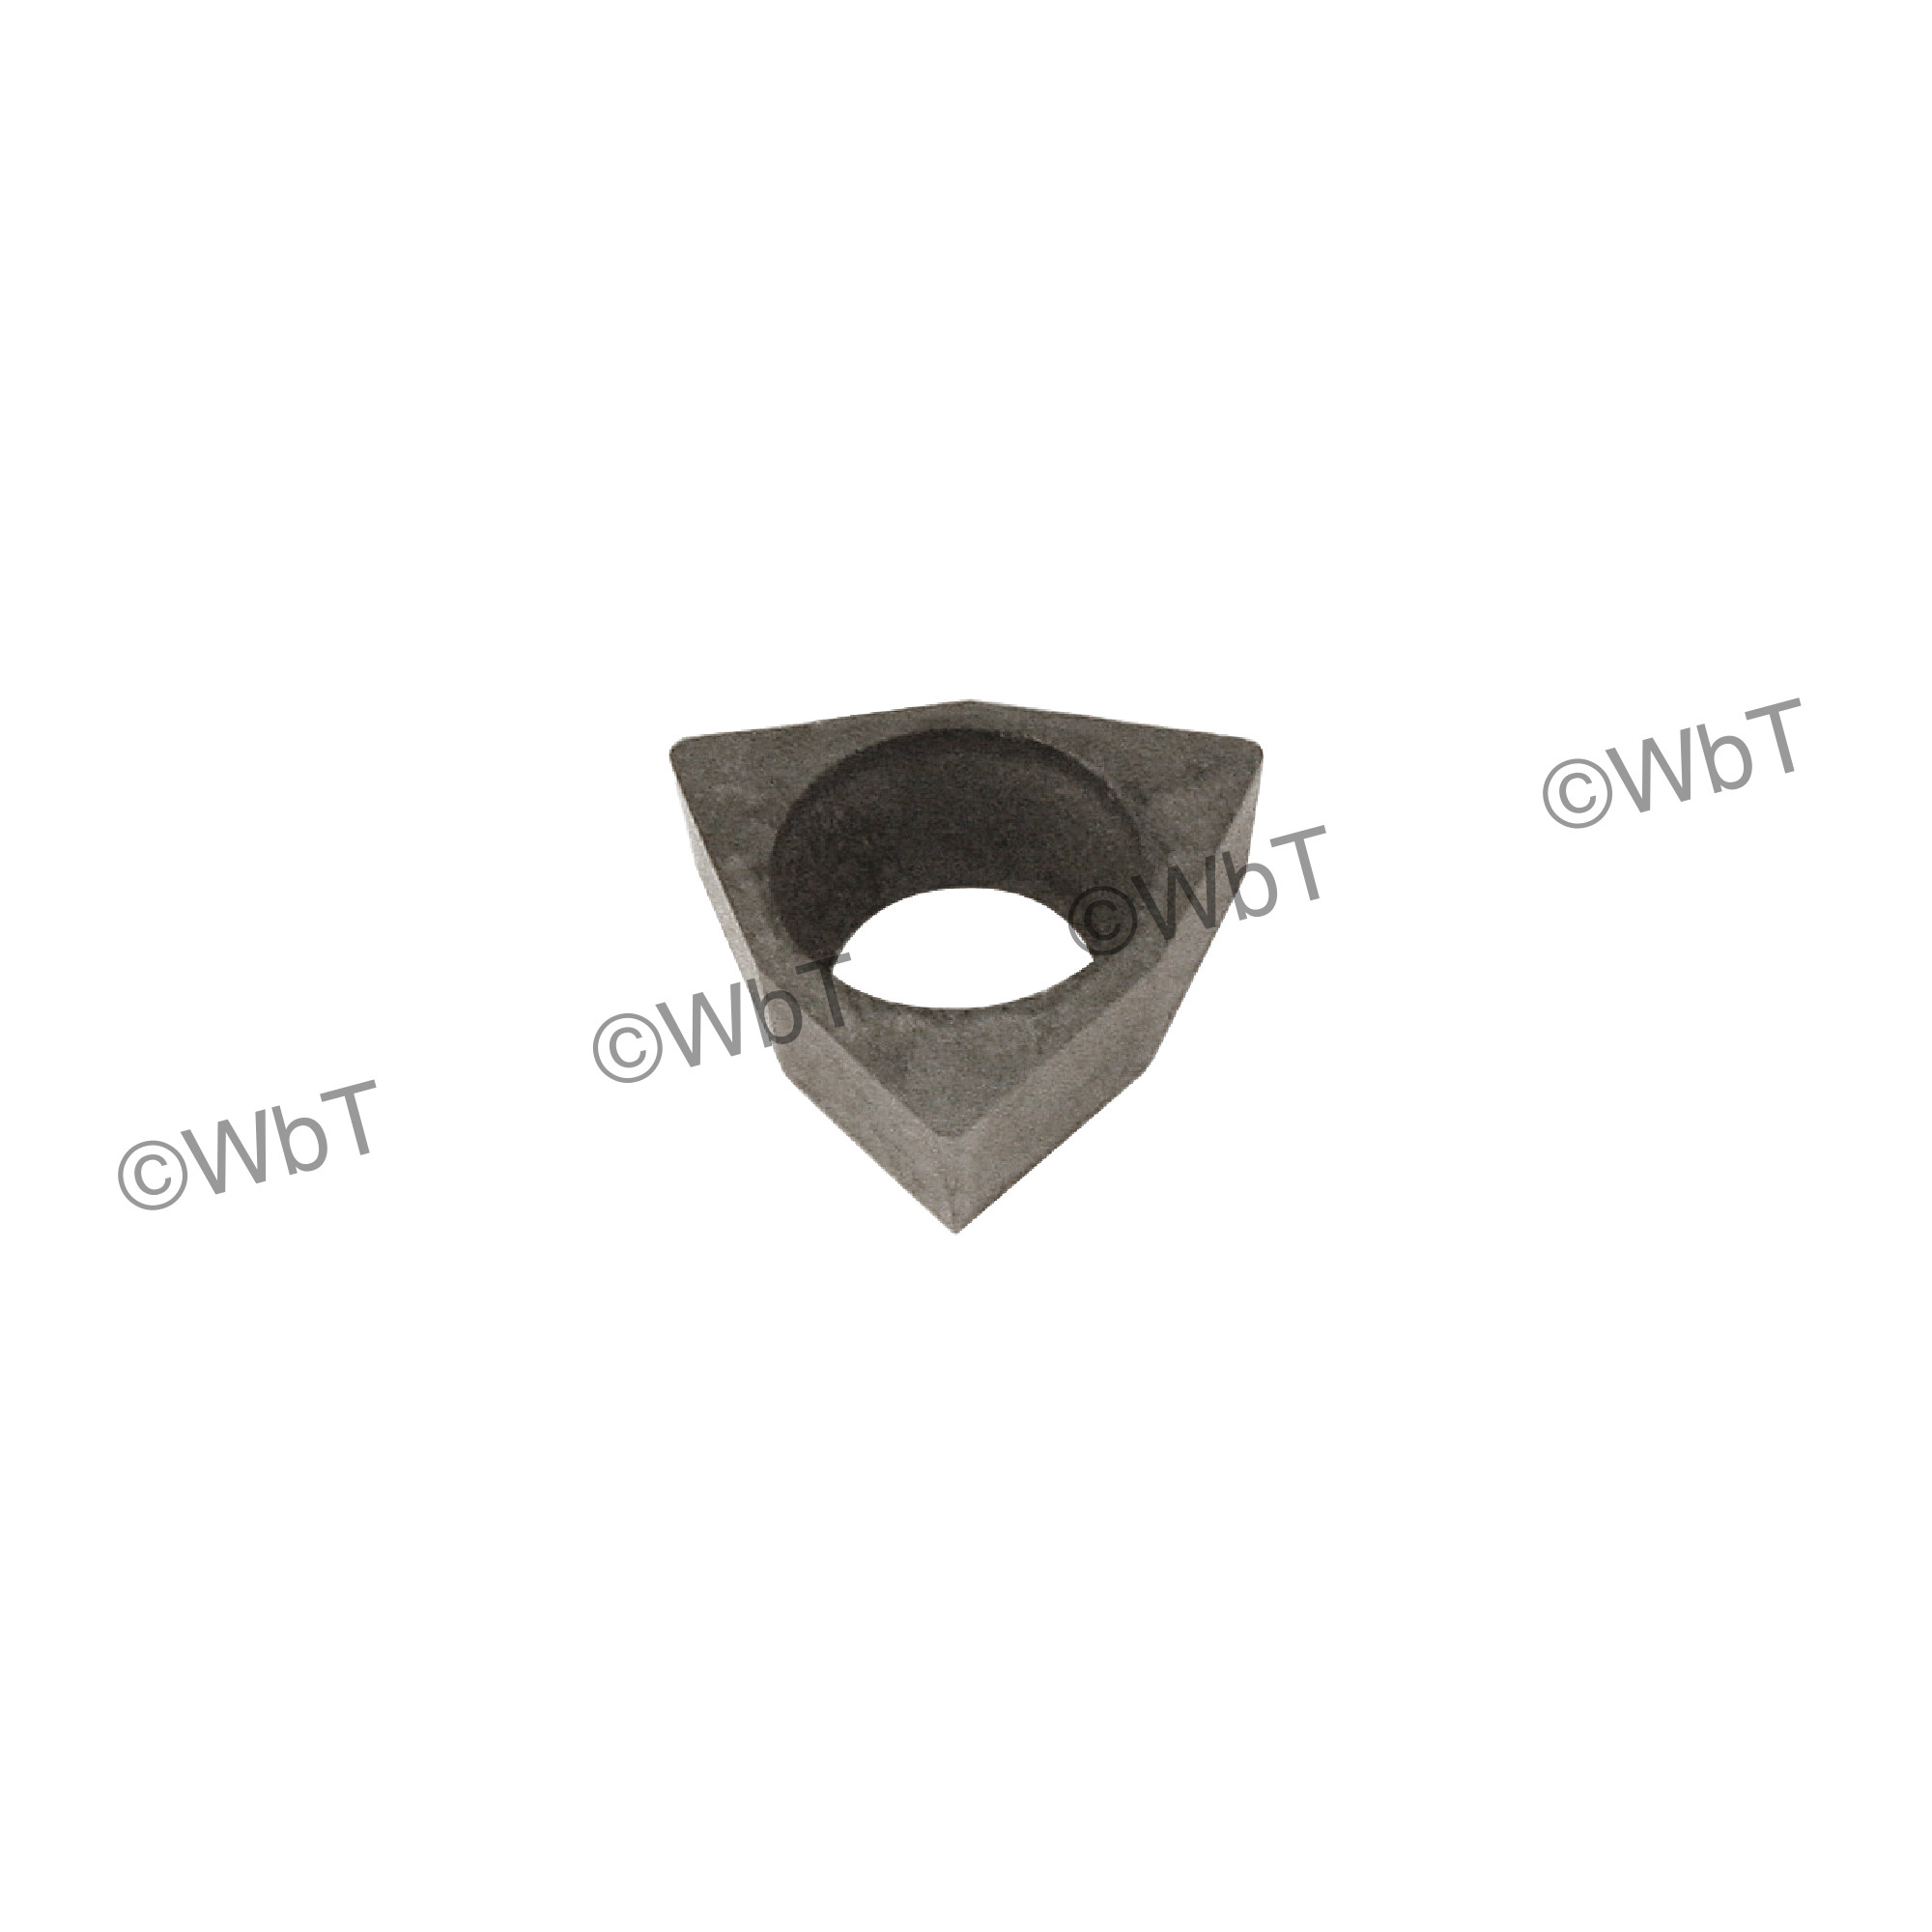 EVEREDE - WCGT-008 CS2 - 80° Trigon / Indexable Carbide Turning Insert